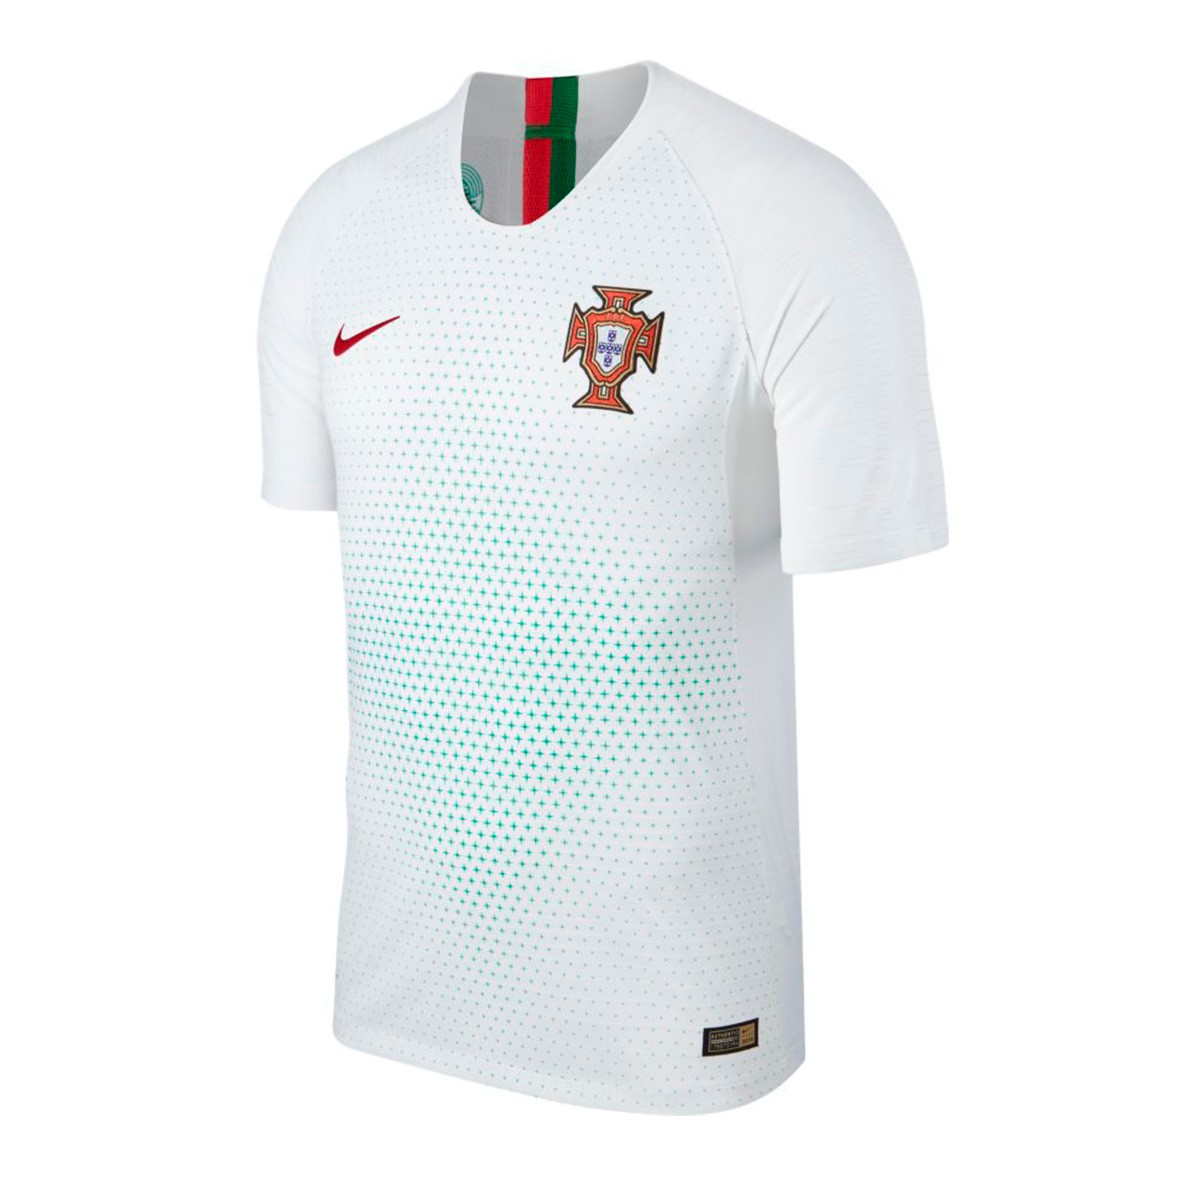 Jersey Nike Portugal Vapor 2018-2019 Away White-Gym red - Football ... 550c58d56